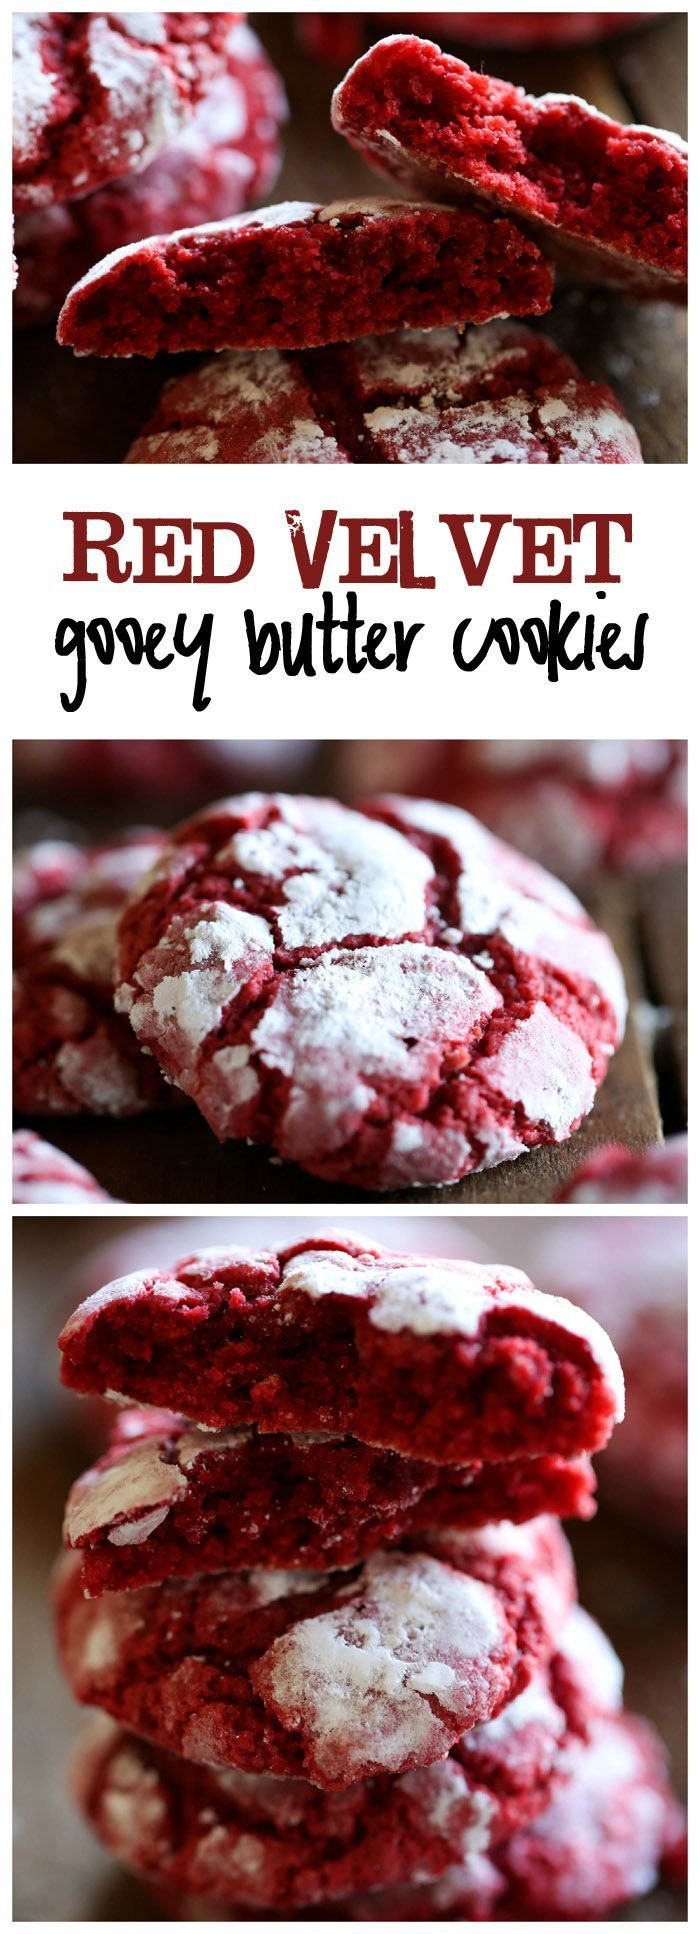 Delicious Gooey Red Velvet Butter Cookies Recipe - Perfect for the Holidays!